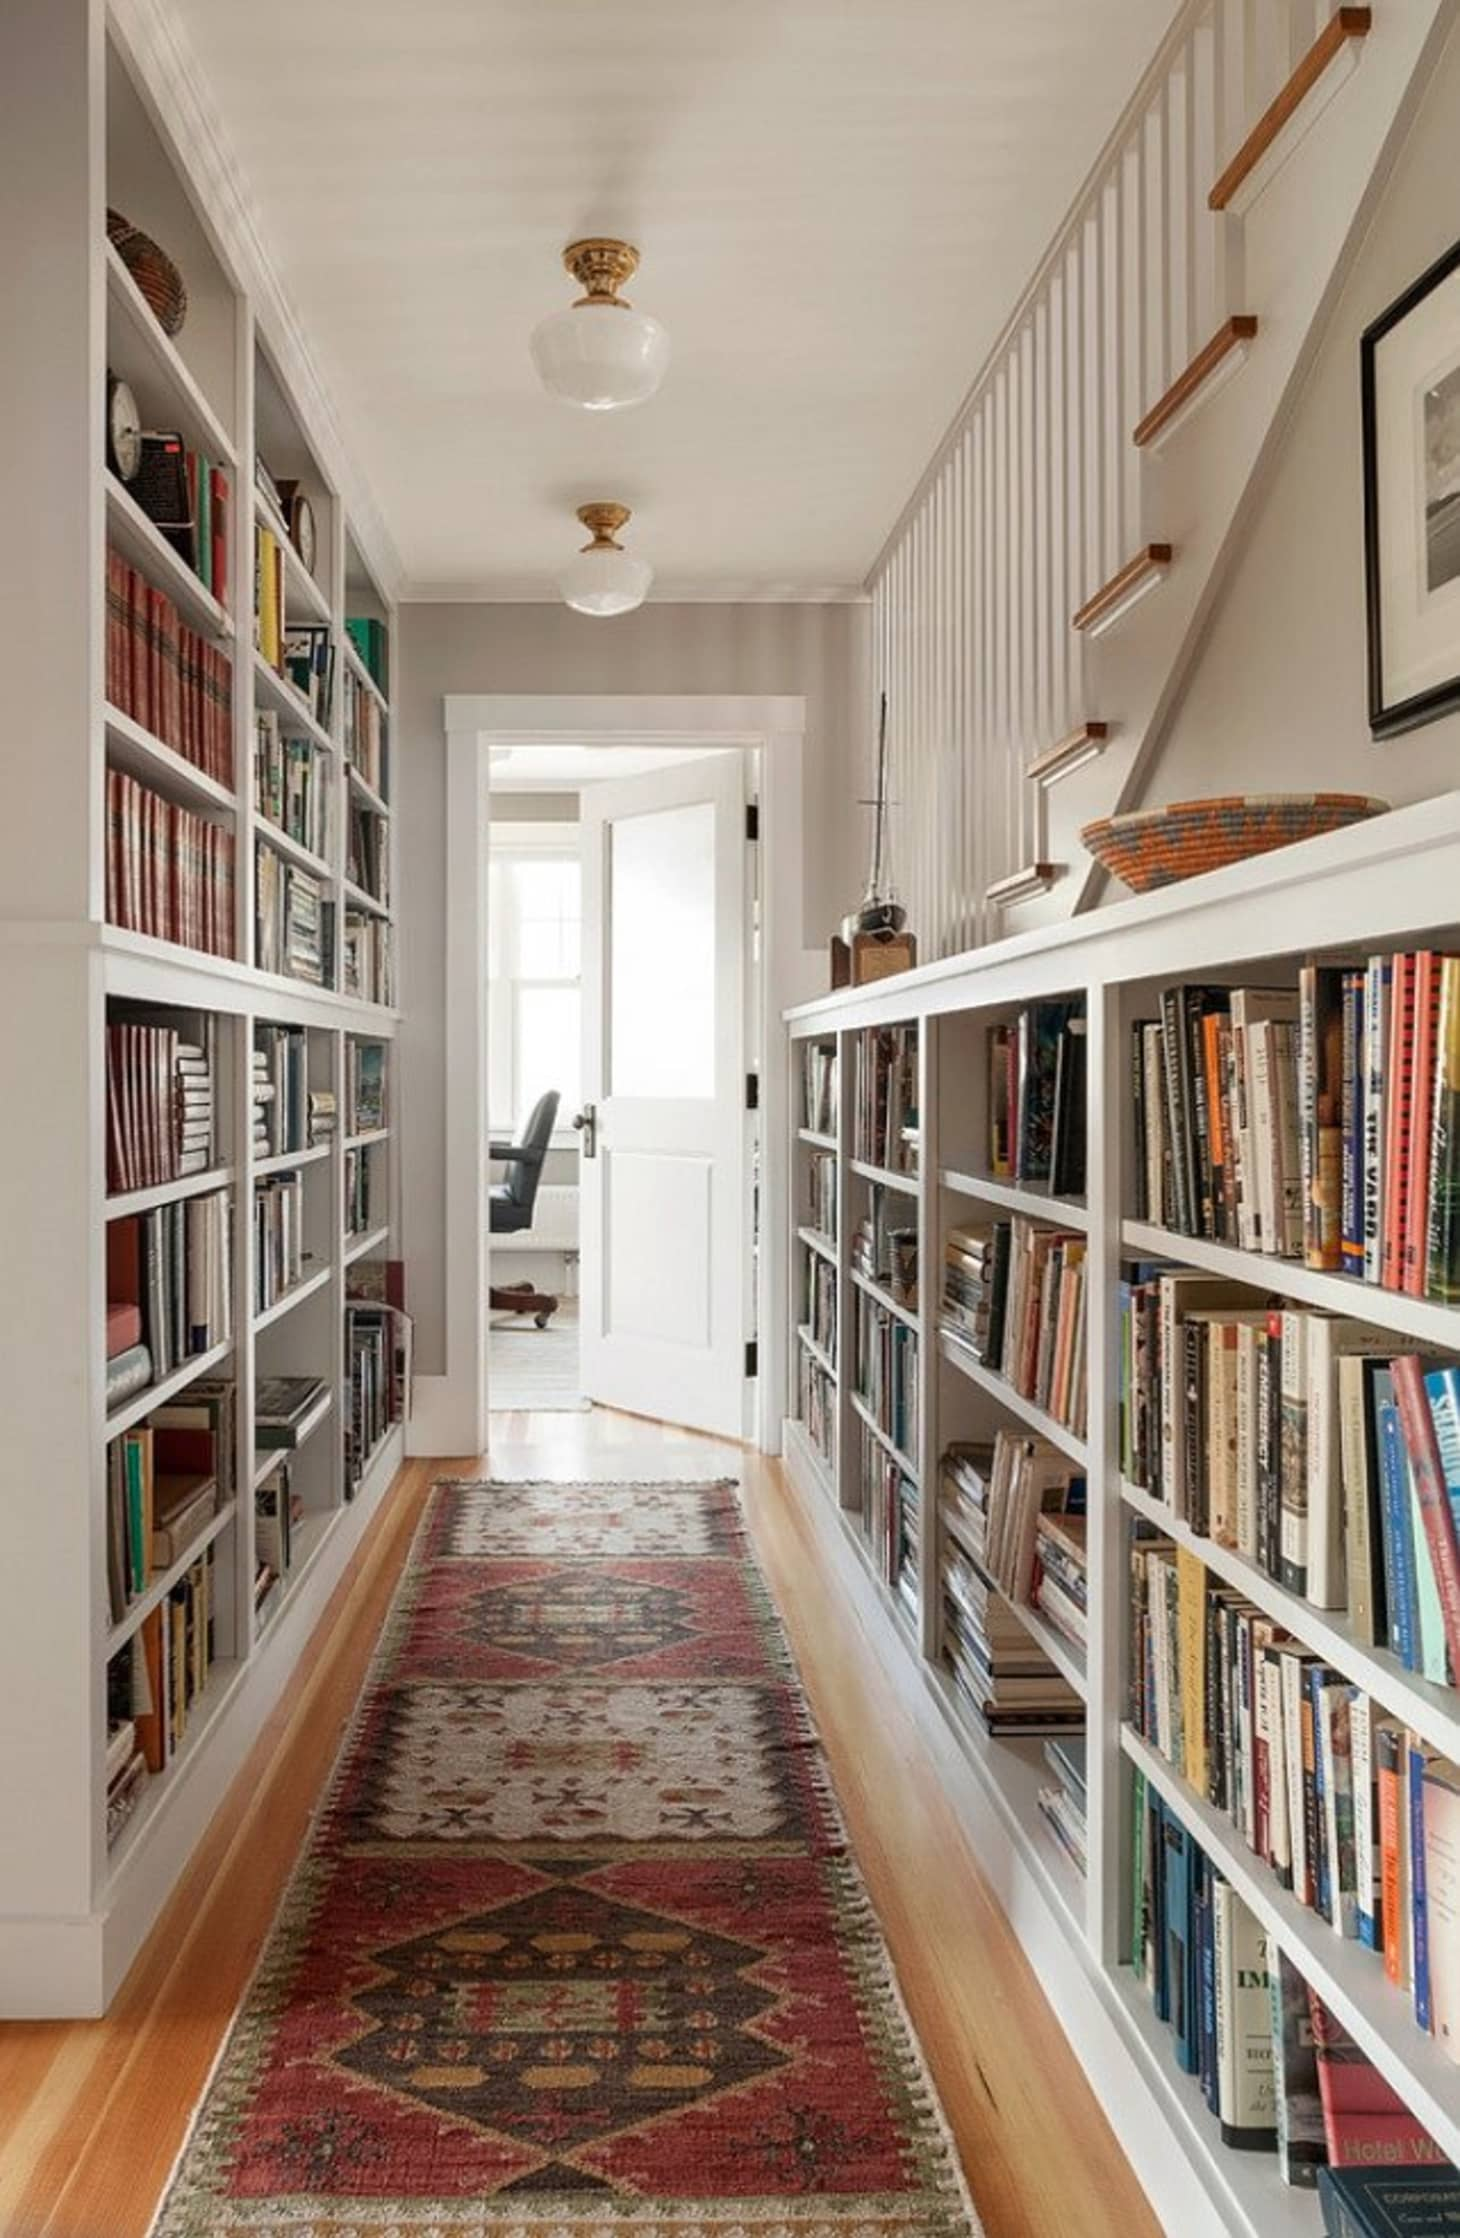 10 Ways To Jazz Up A Boring Hallway Apartment Therapy